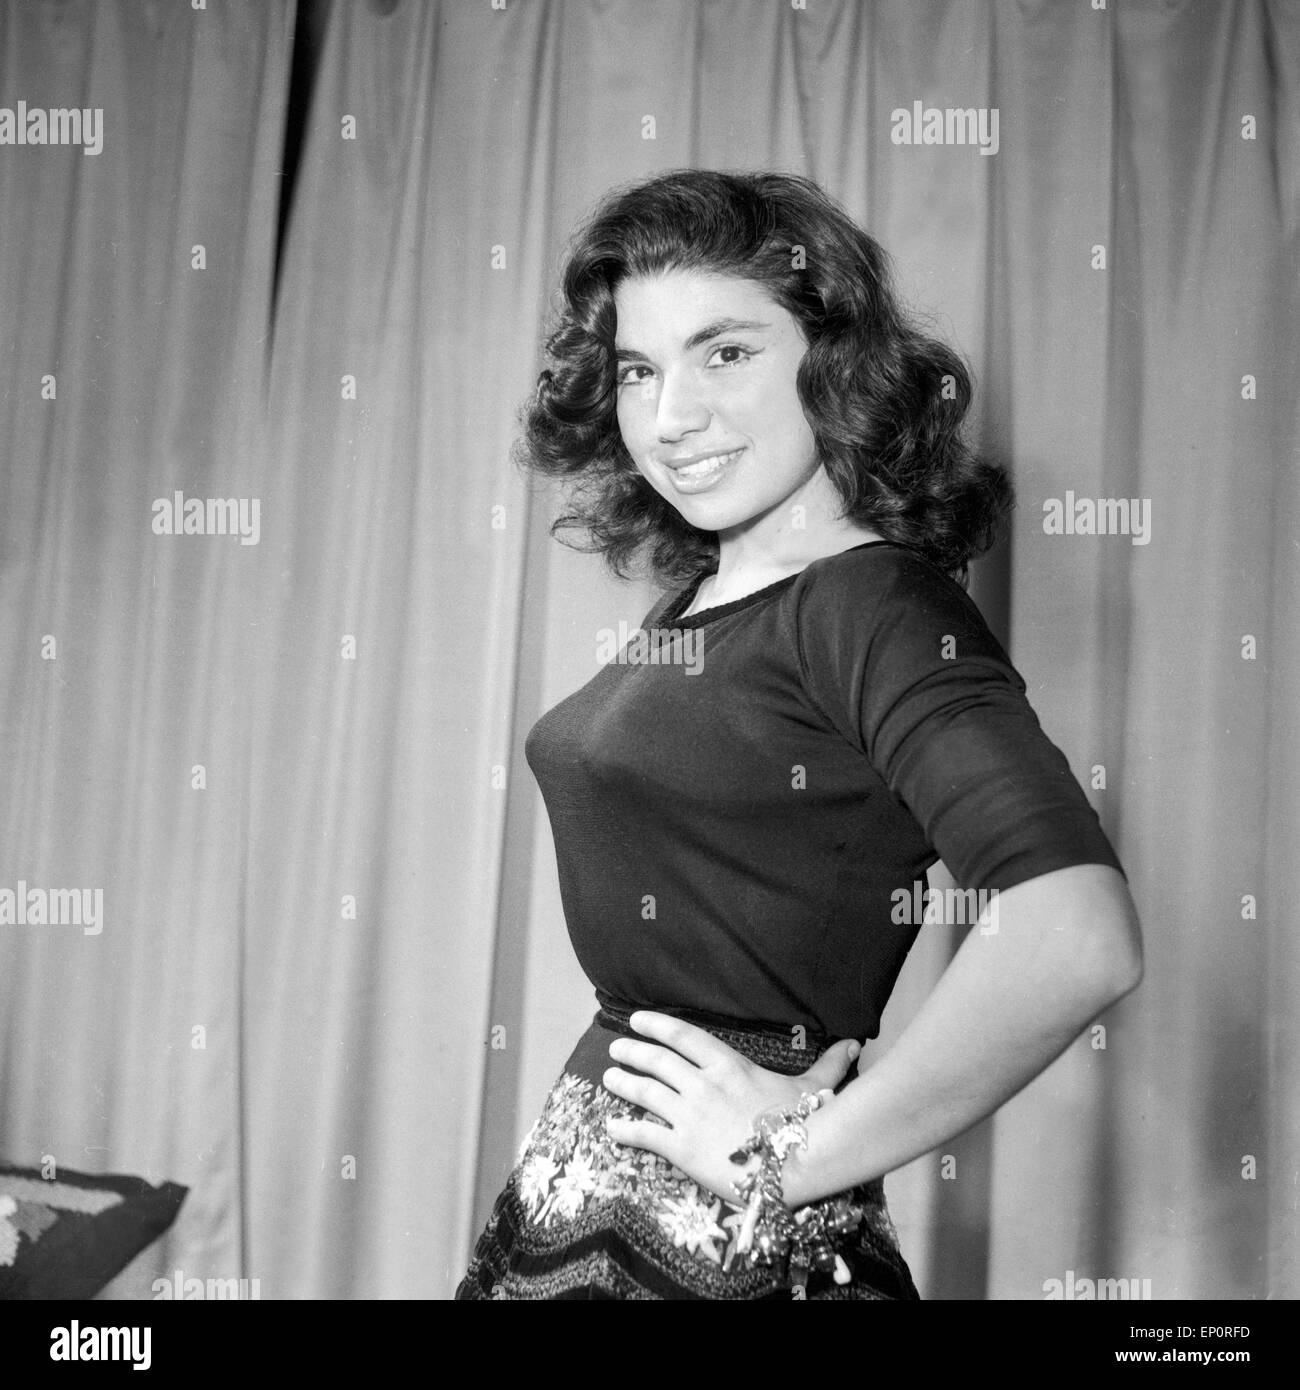 Brasilianische Sängerin und Schauspielerin Vanja Orico, in Hamburg 1956. Brazilian singer and actress Vanja - Stock Image